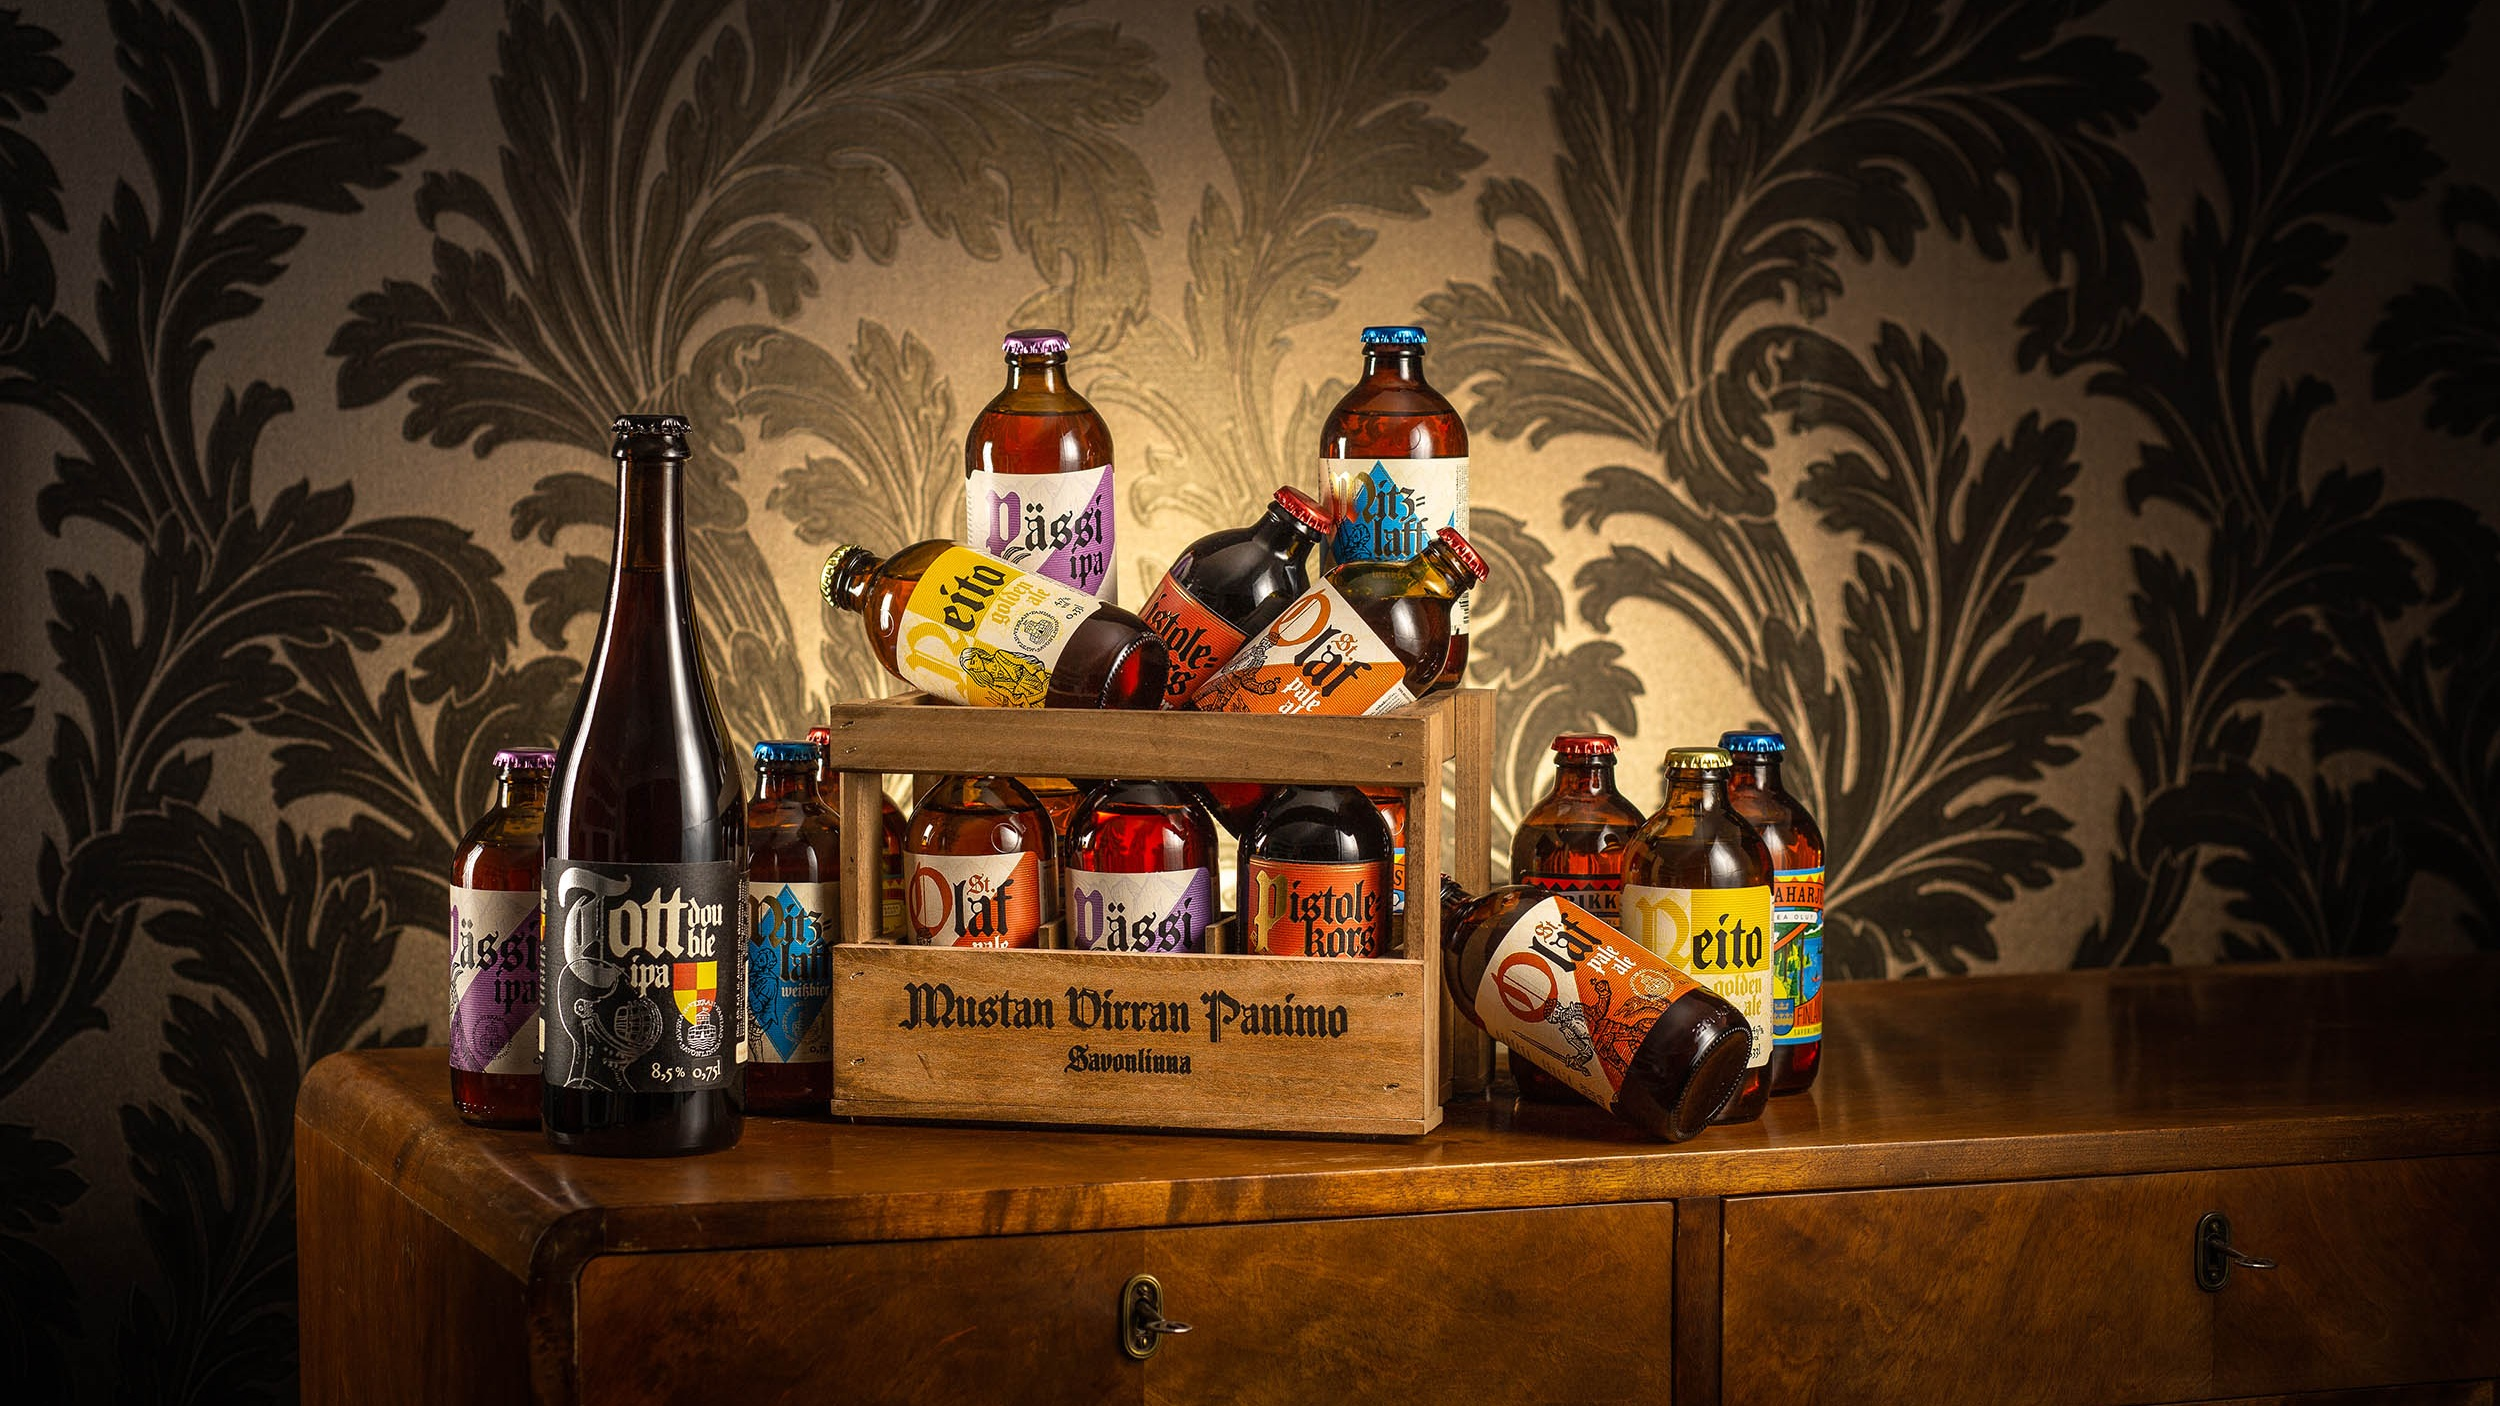 Mustan Virran Panimo - The event is co-organized and hosted by one of the fastest growing finnish craft breweries, Mustan Virran Panimo.